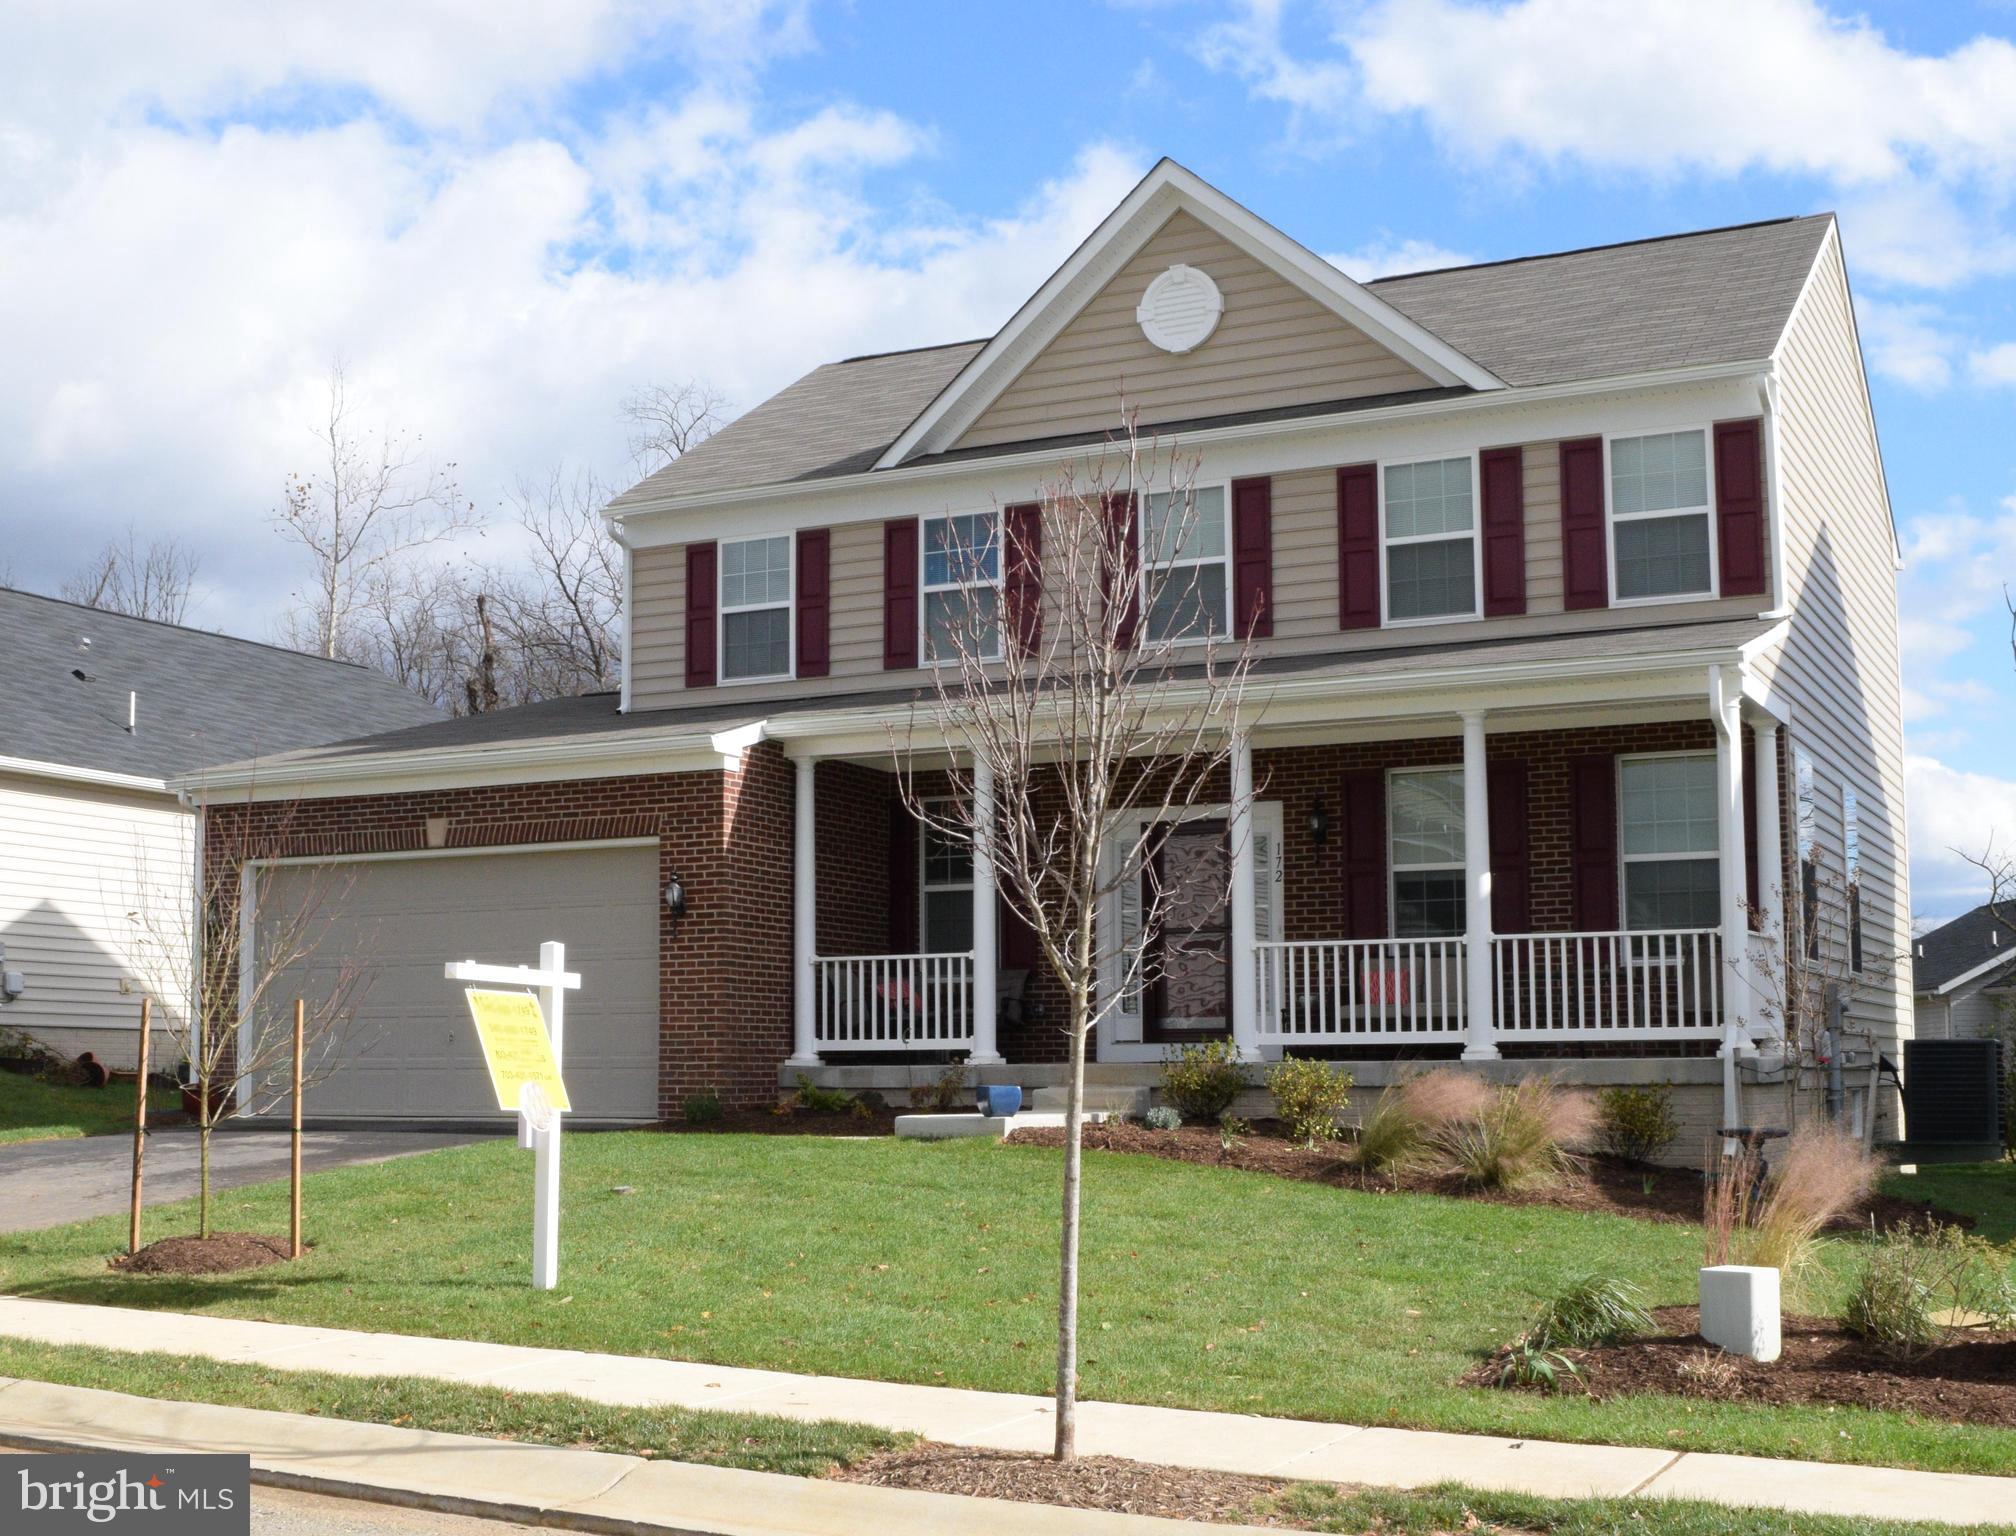 bACK ON THE MARKET! Buyer had financing issue. This year, give yourself the gift of a new build home